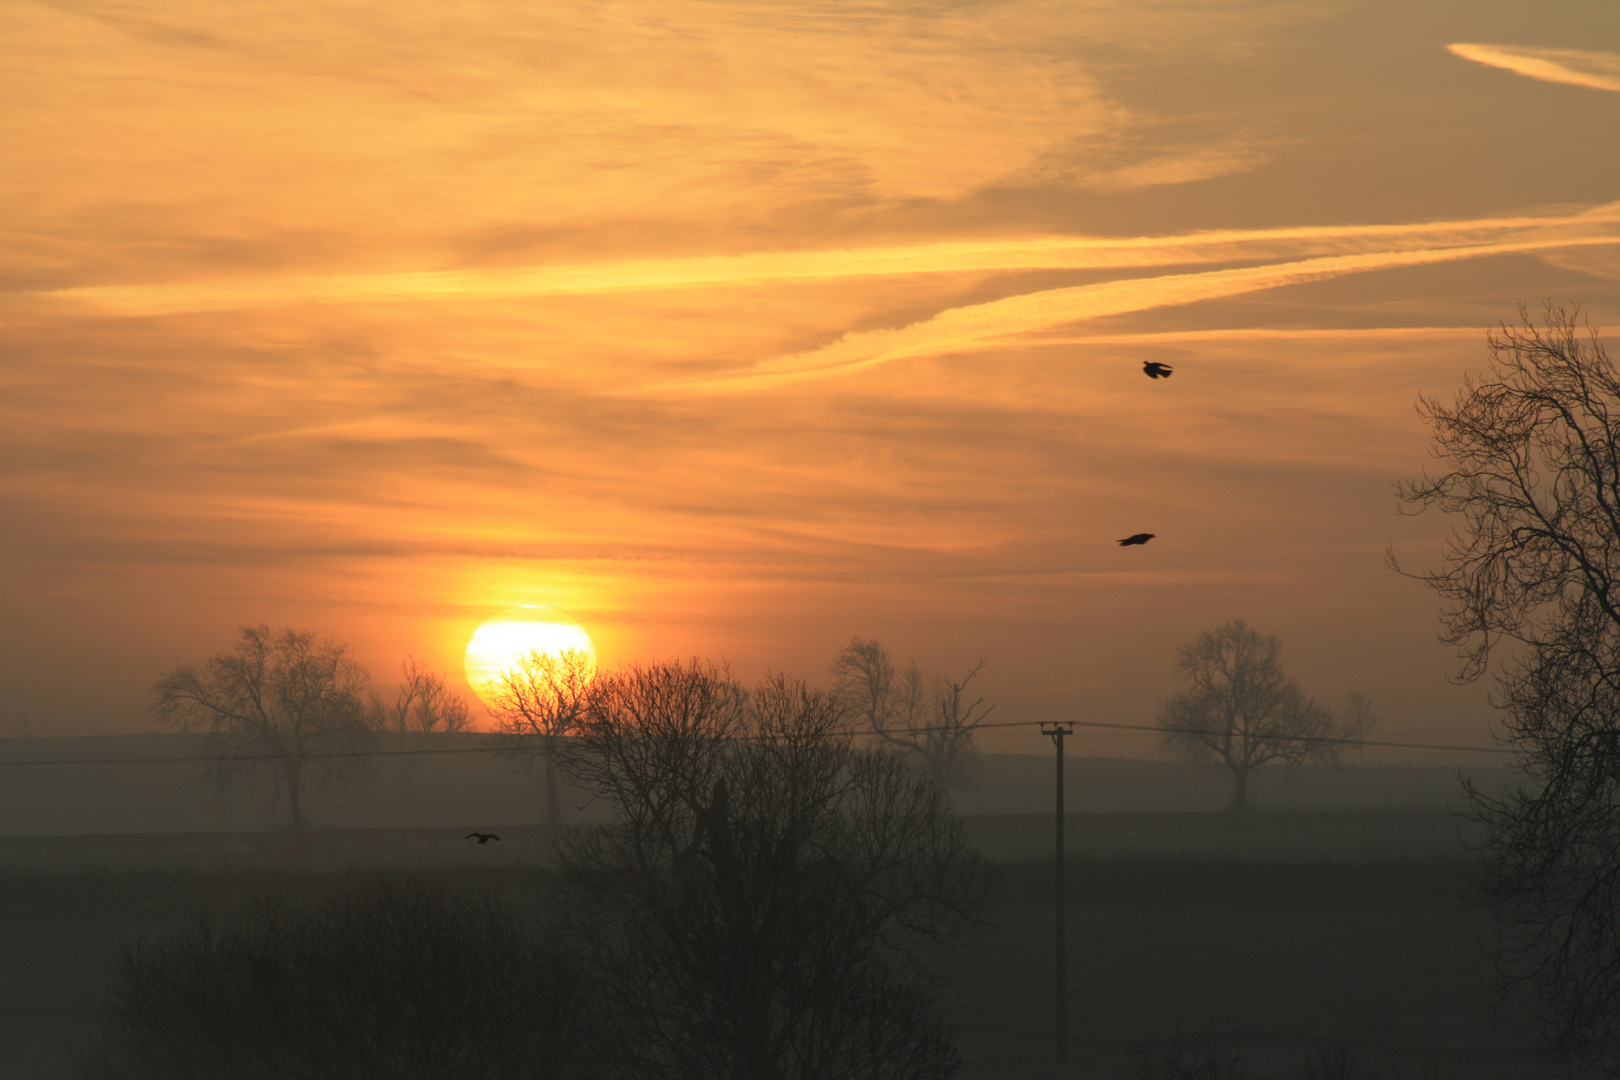 As the sun rises above the hill, the birds take flight